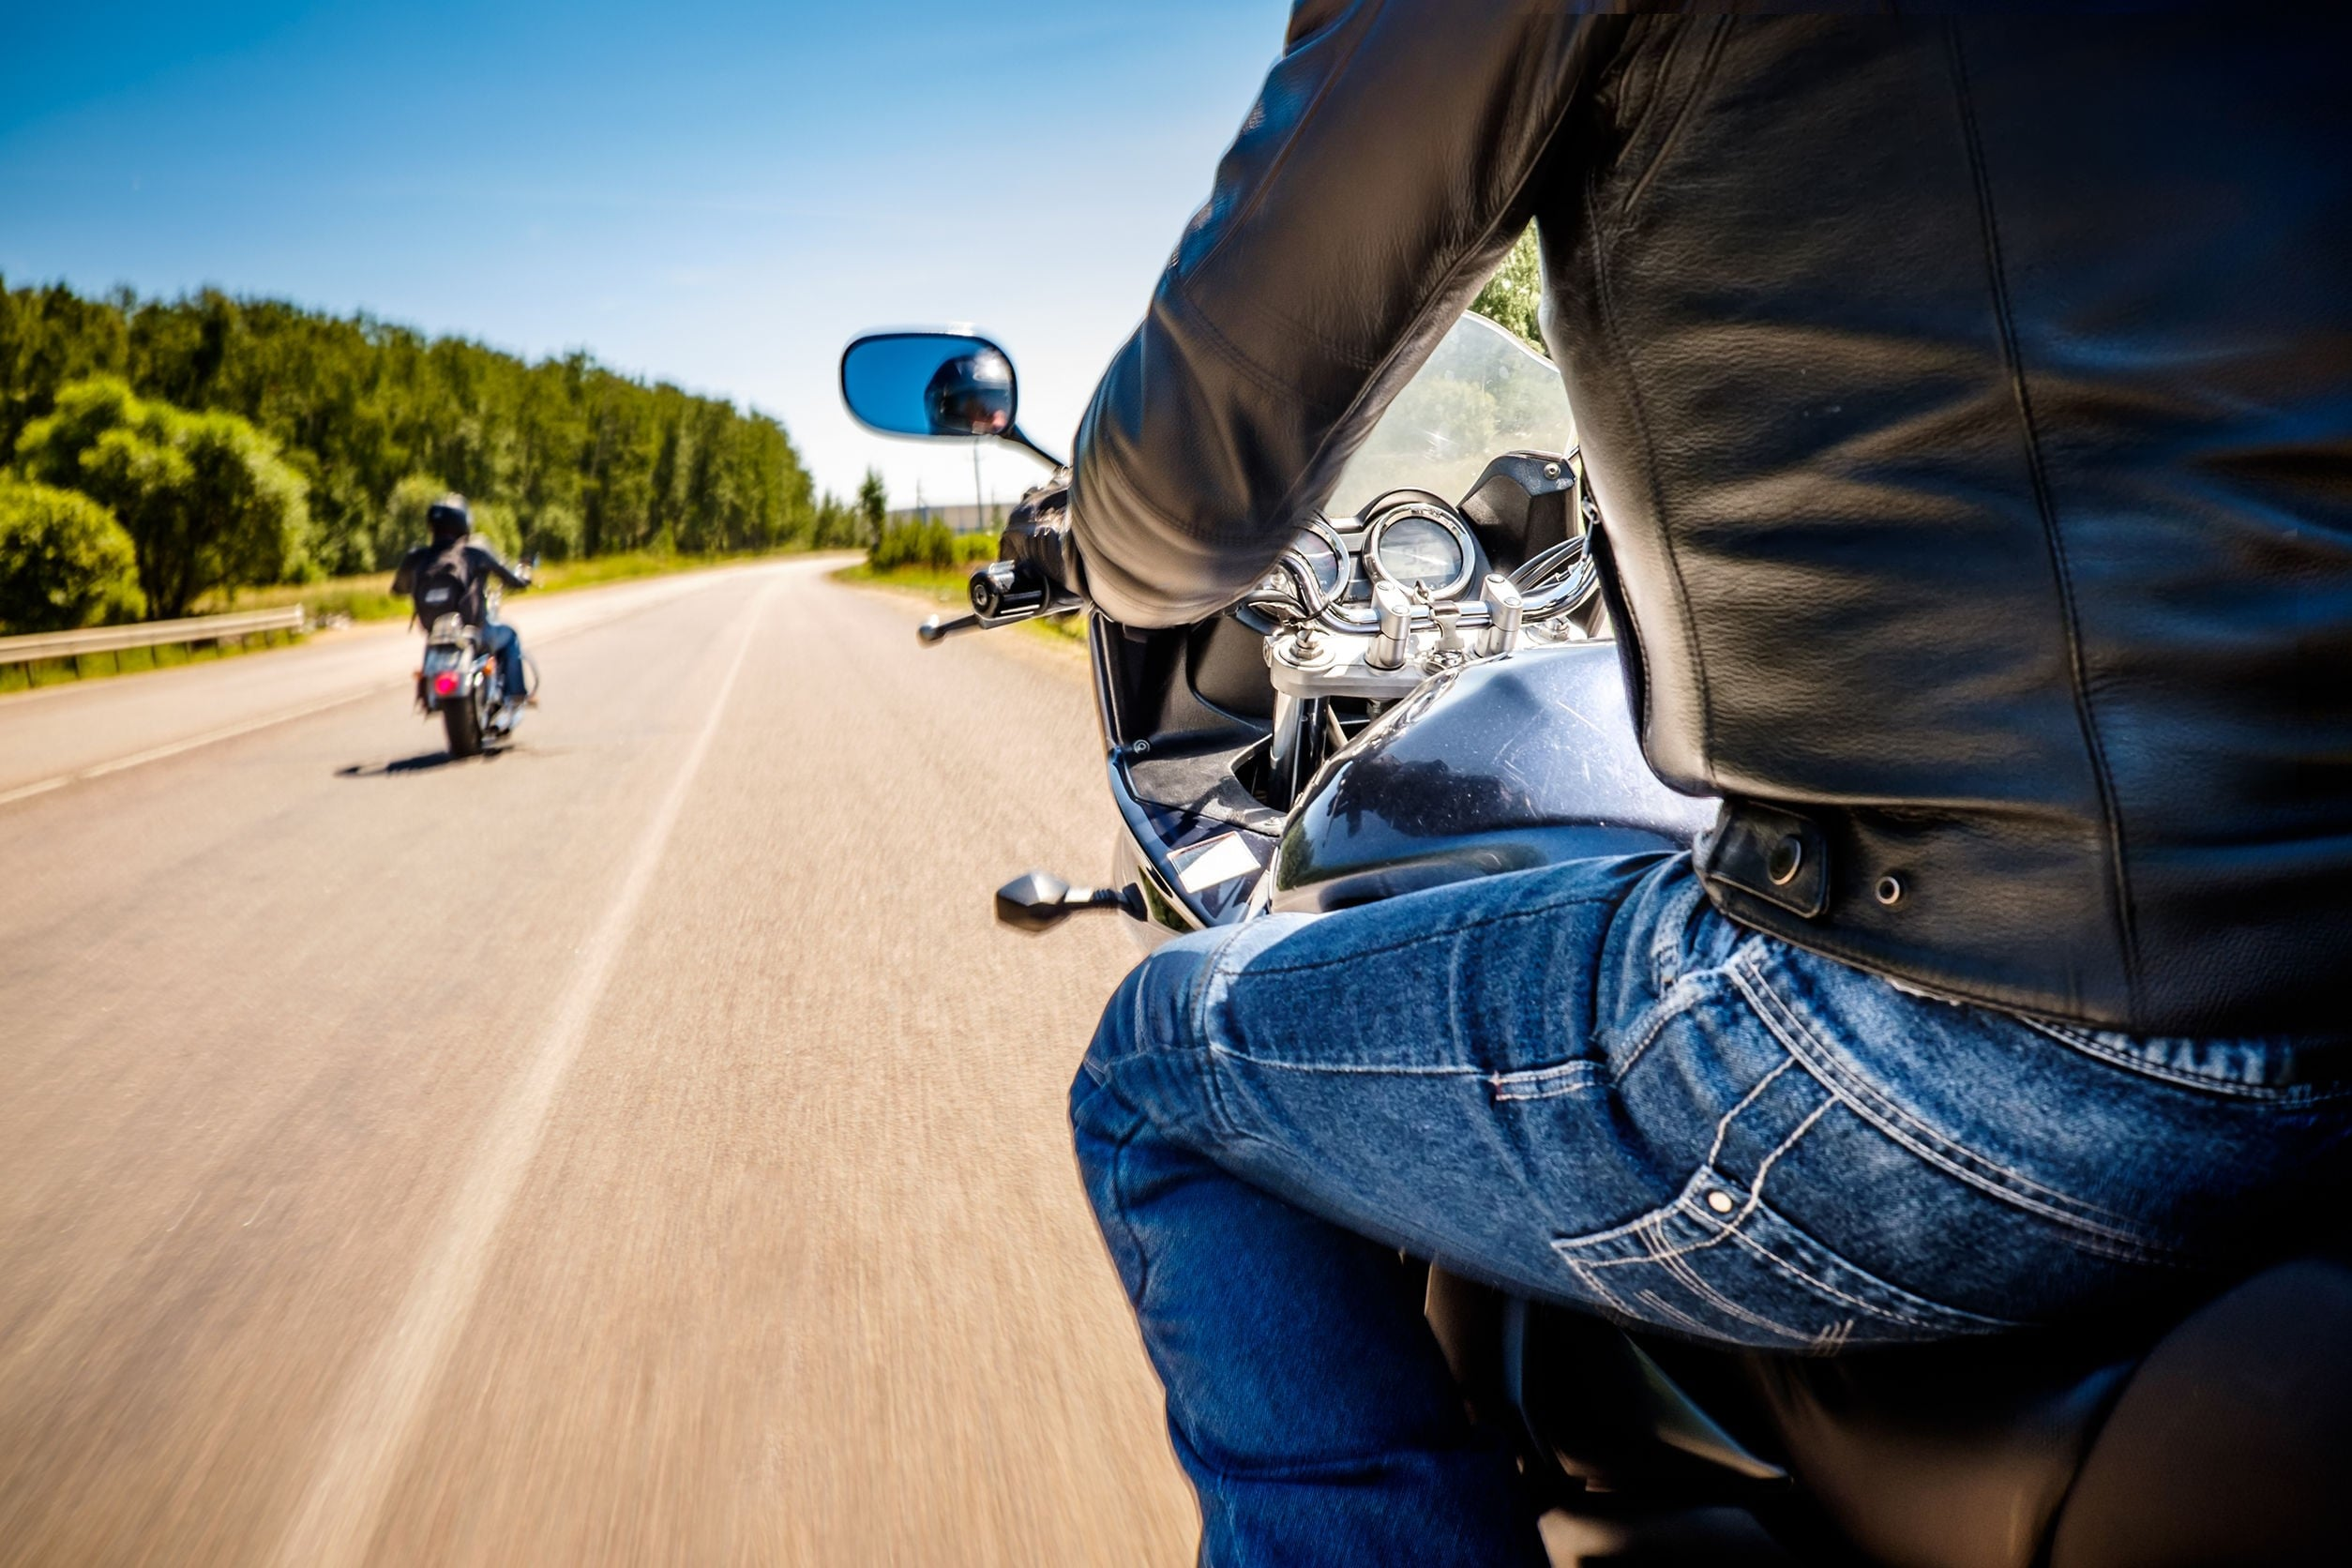 David Motorcycle Accident Attorney